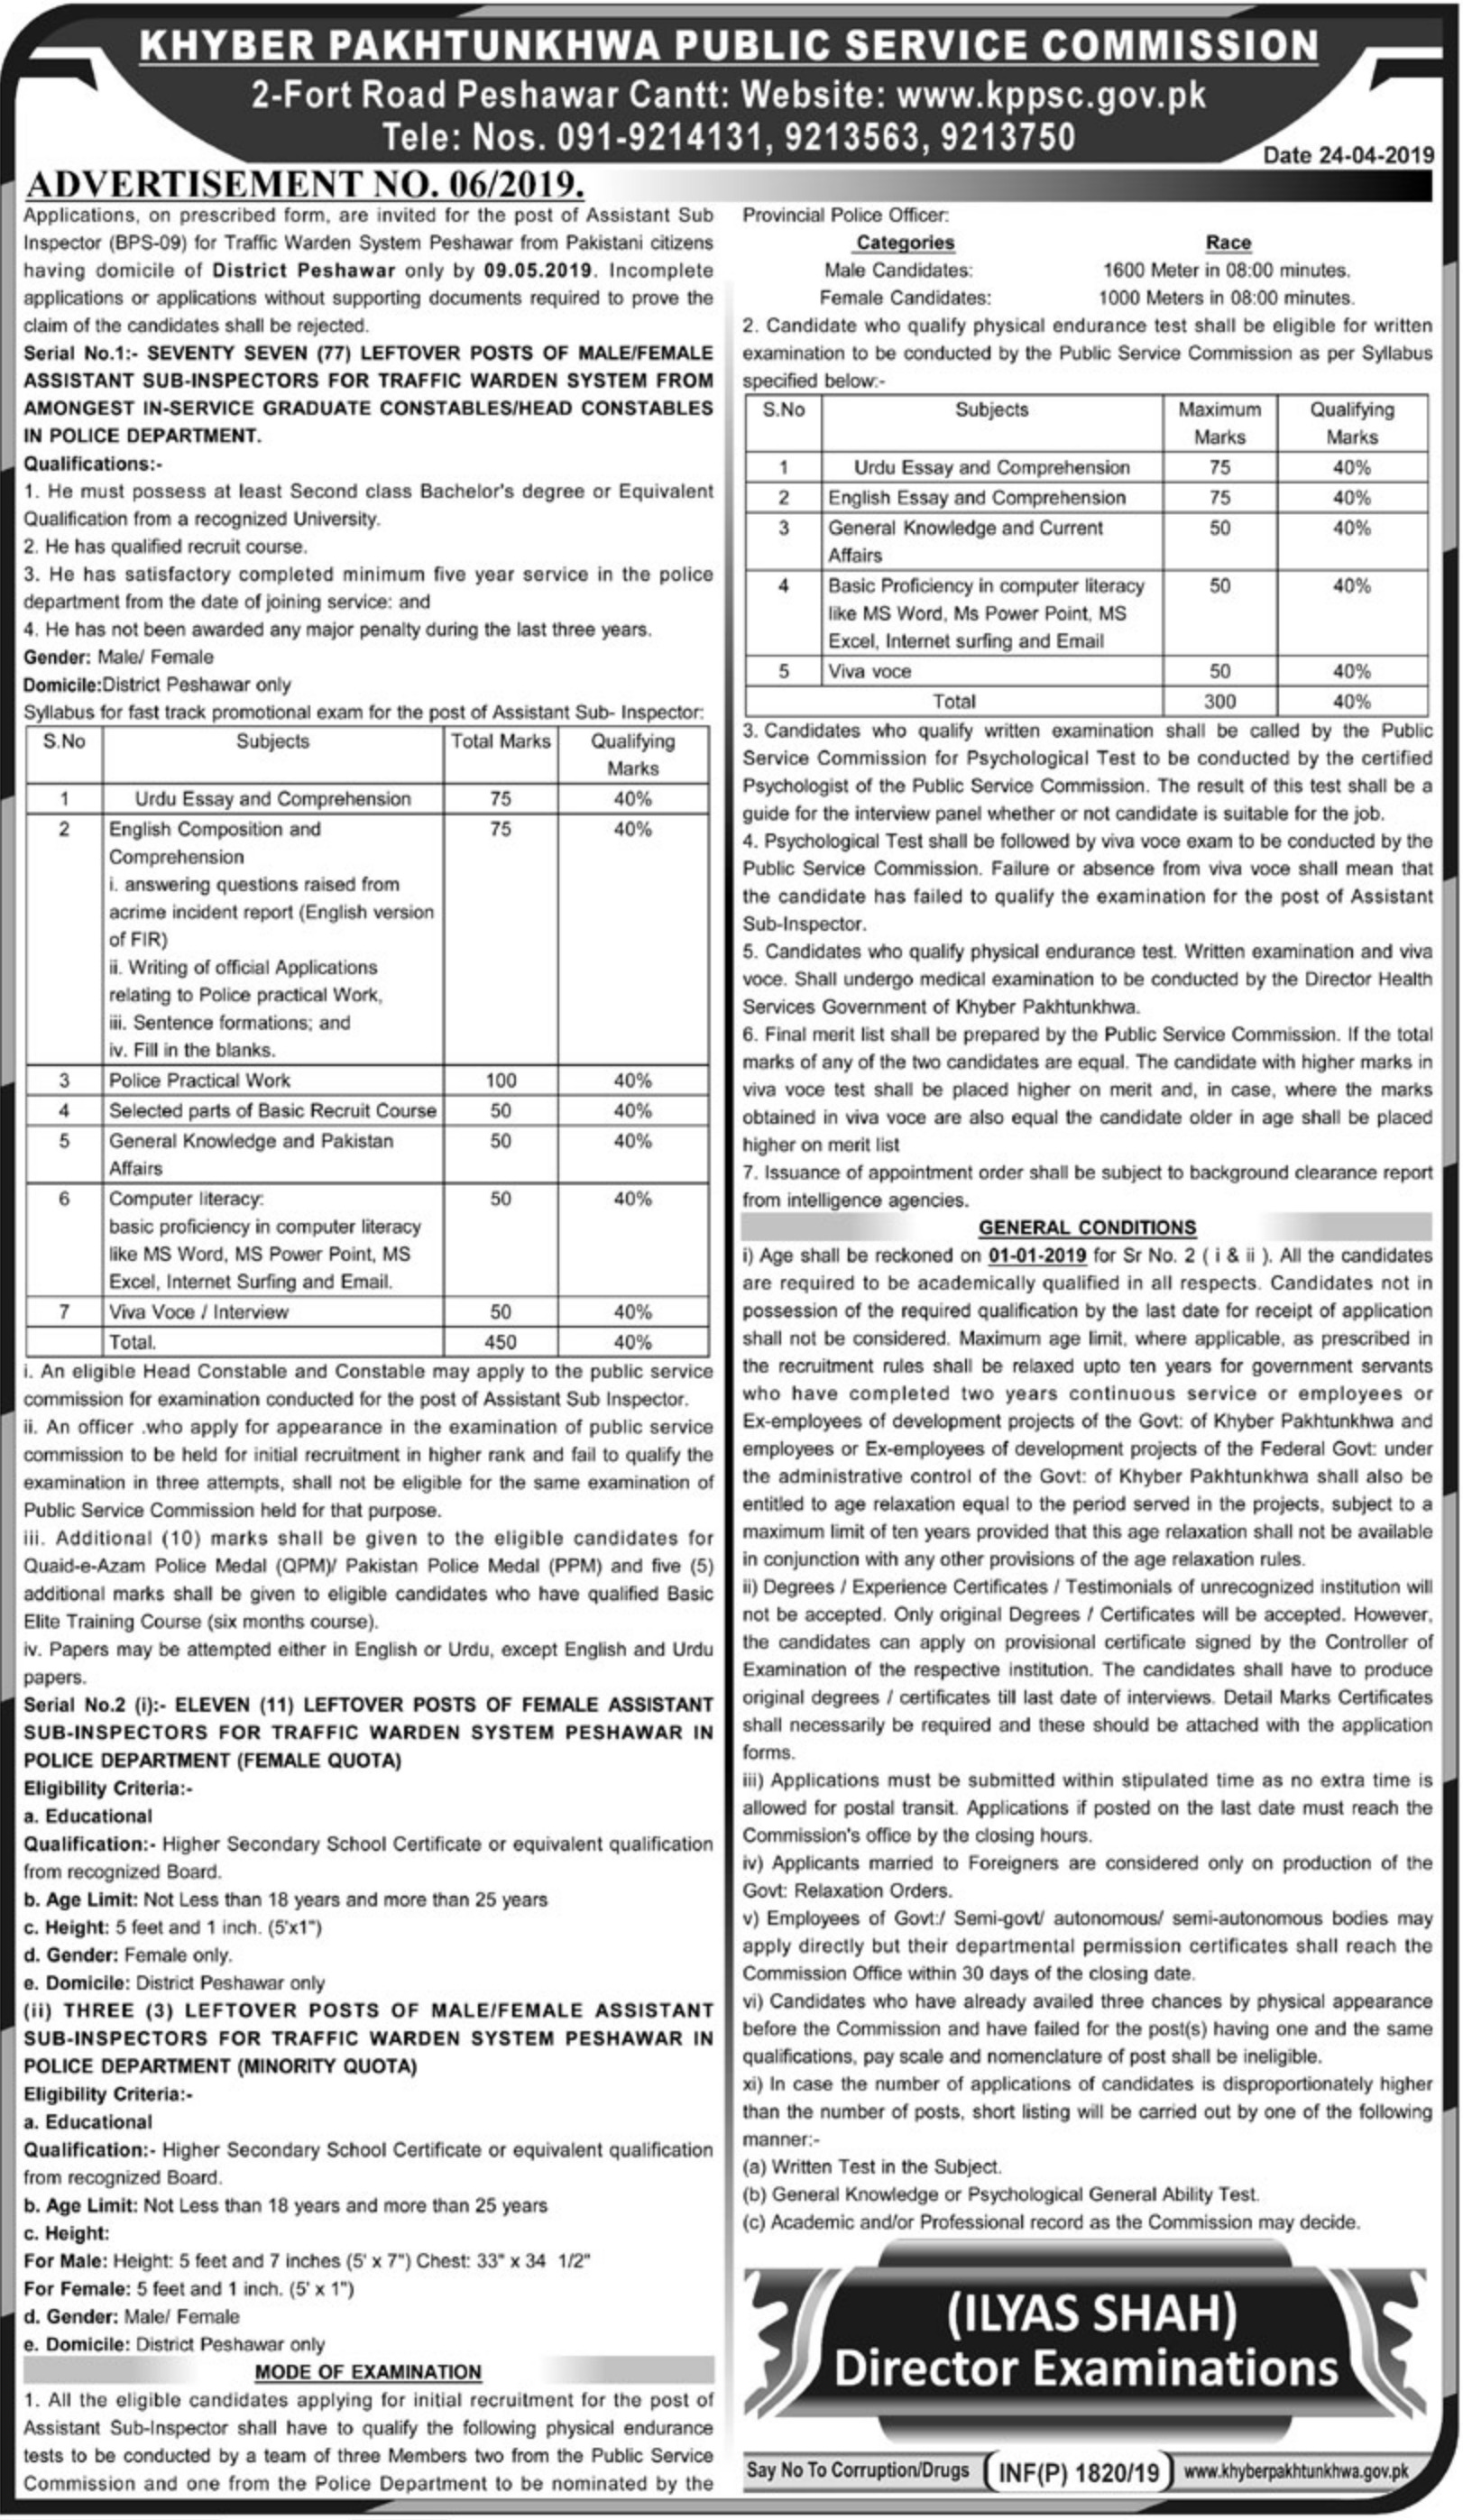 KPPSC Jobs 2019 Khyber Pakhtunkhwa Public Service Commission Latest